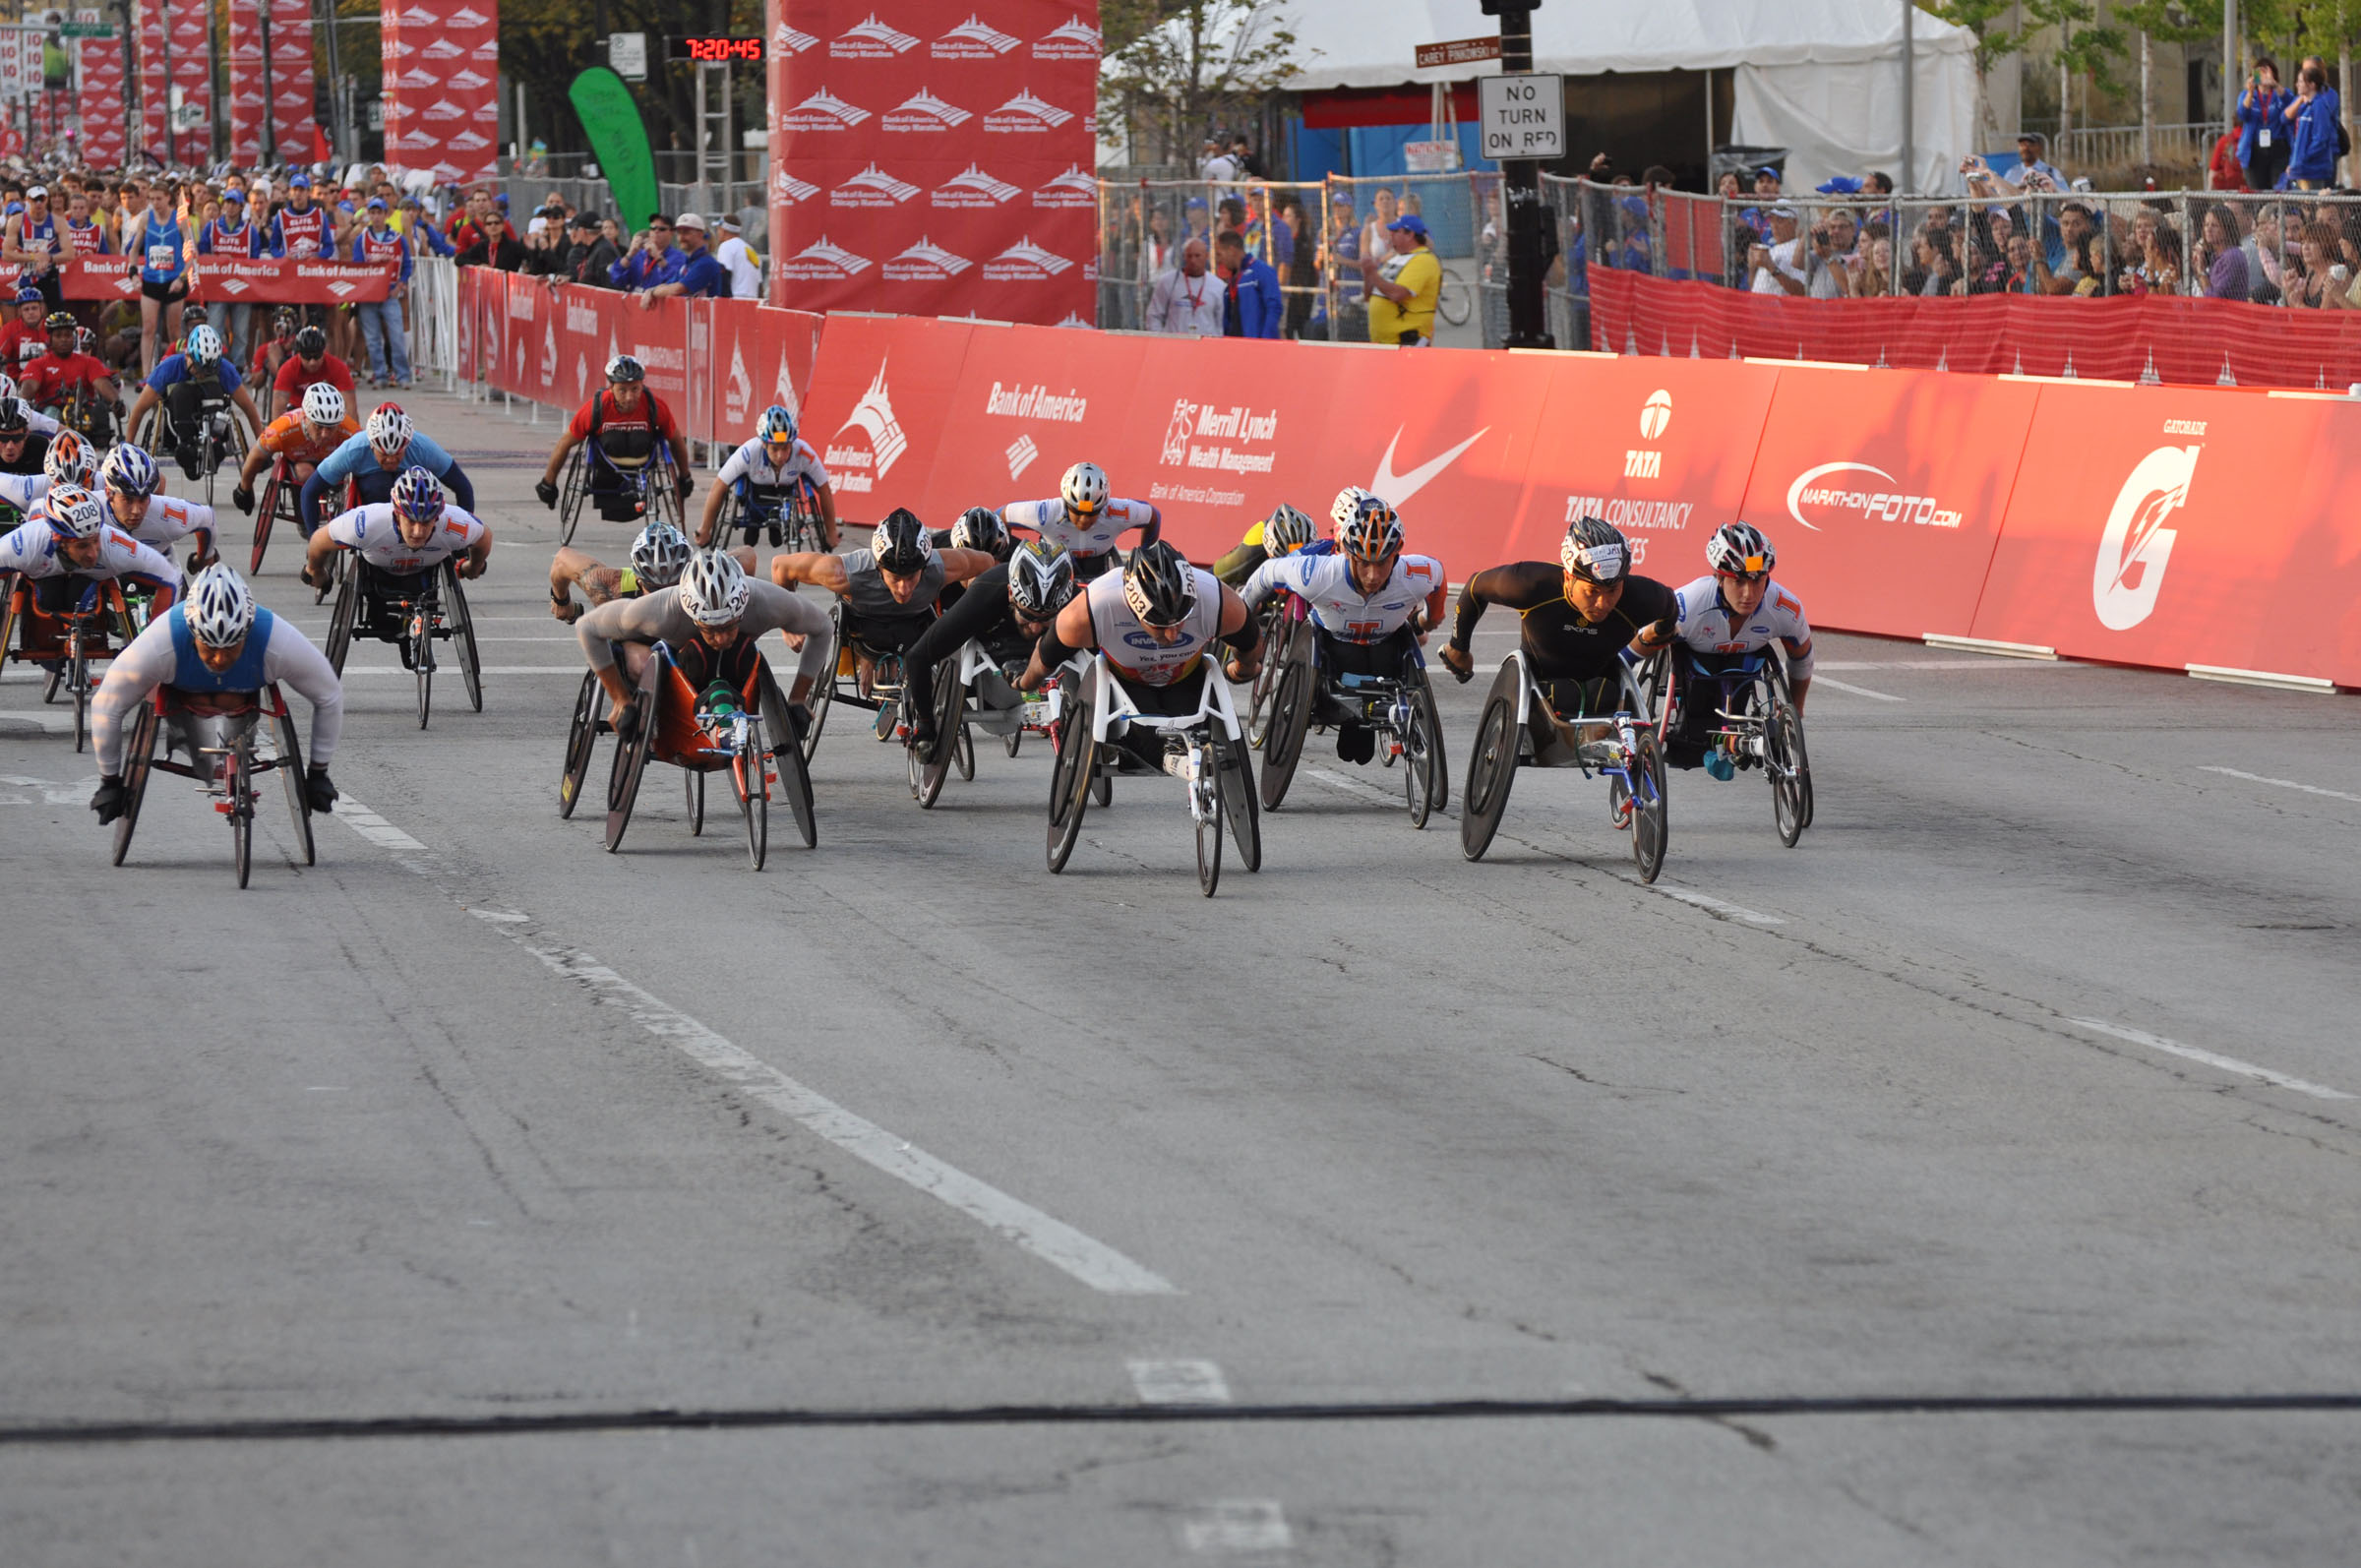 Wheelchair Division start of the 2010 Chicago Marathon